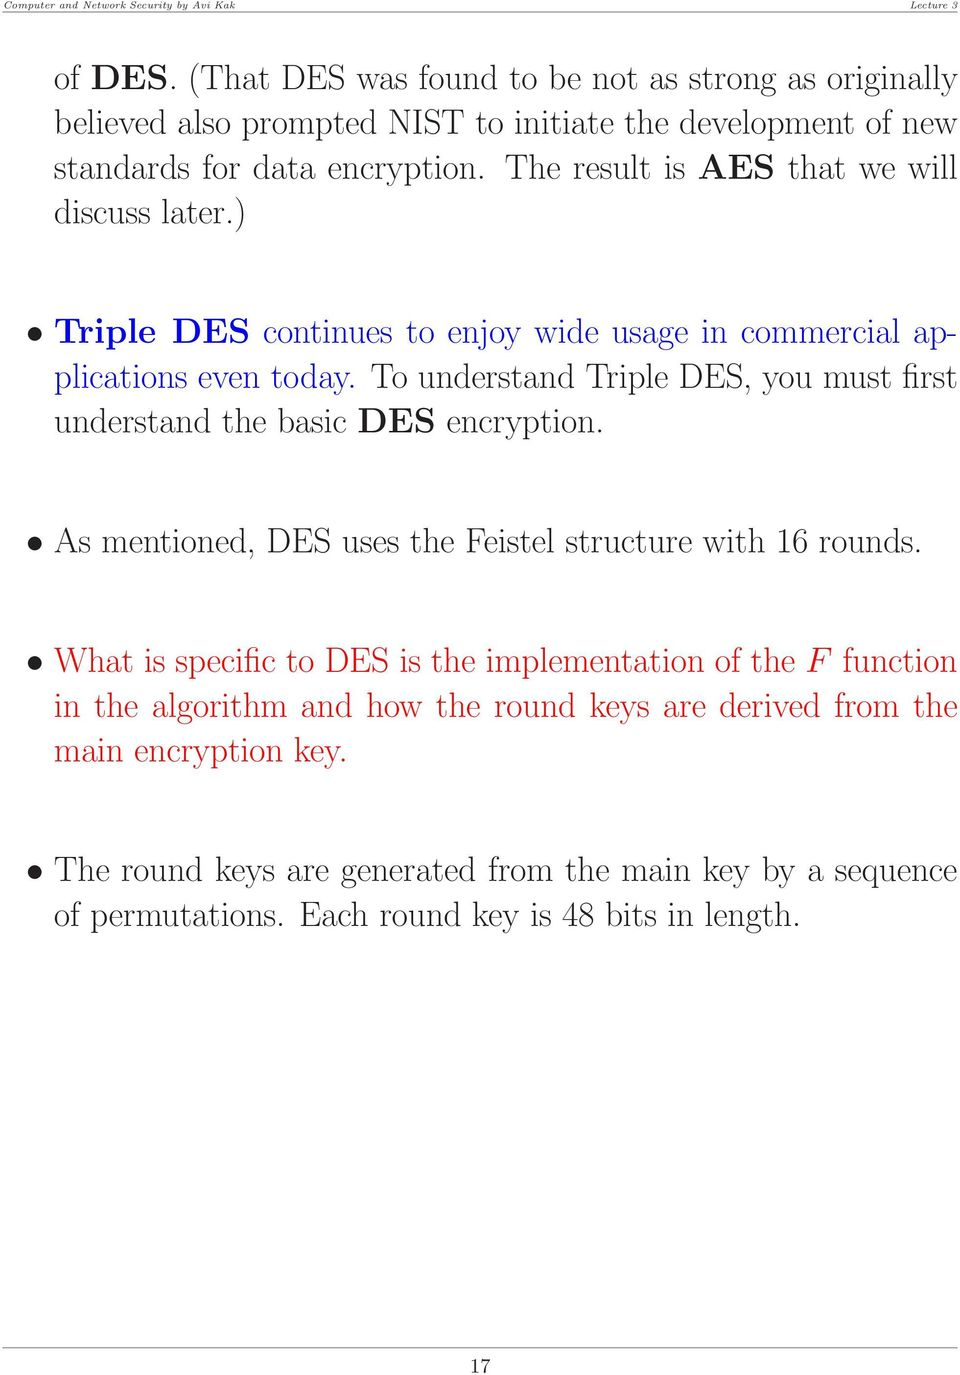 Lecture 3: Block Ciphers and the Data Encryption Standard